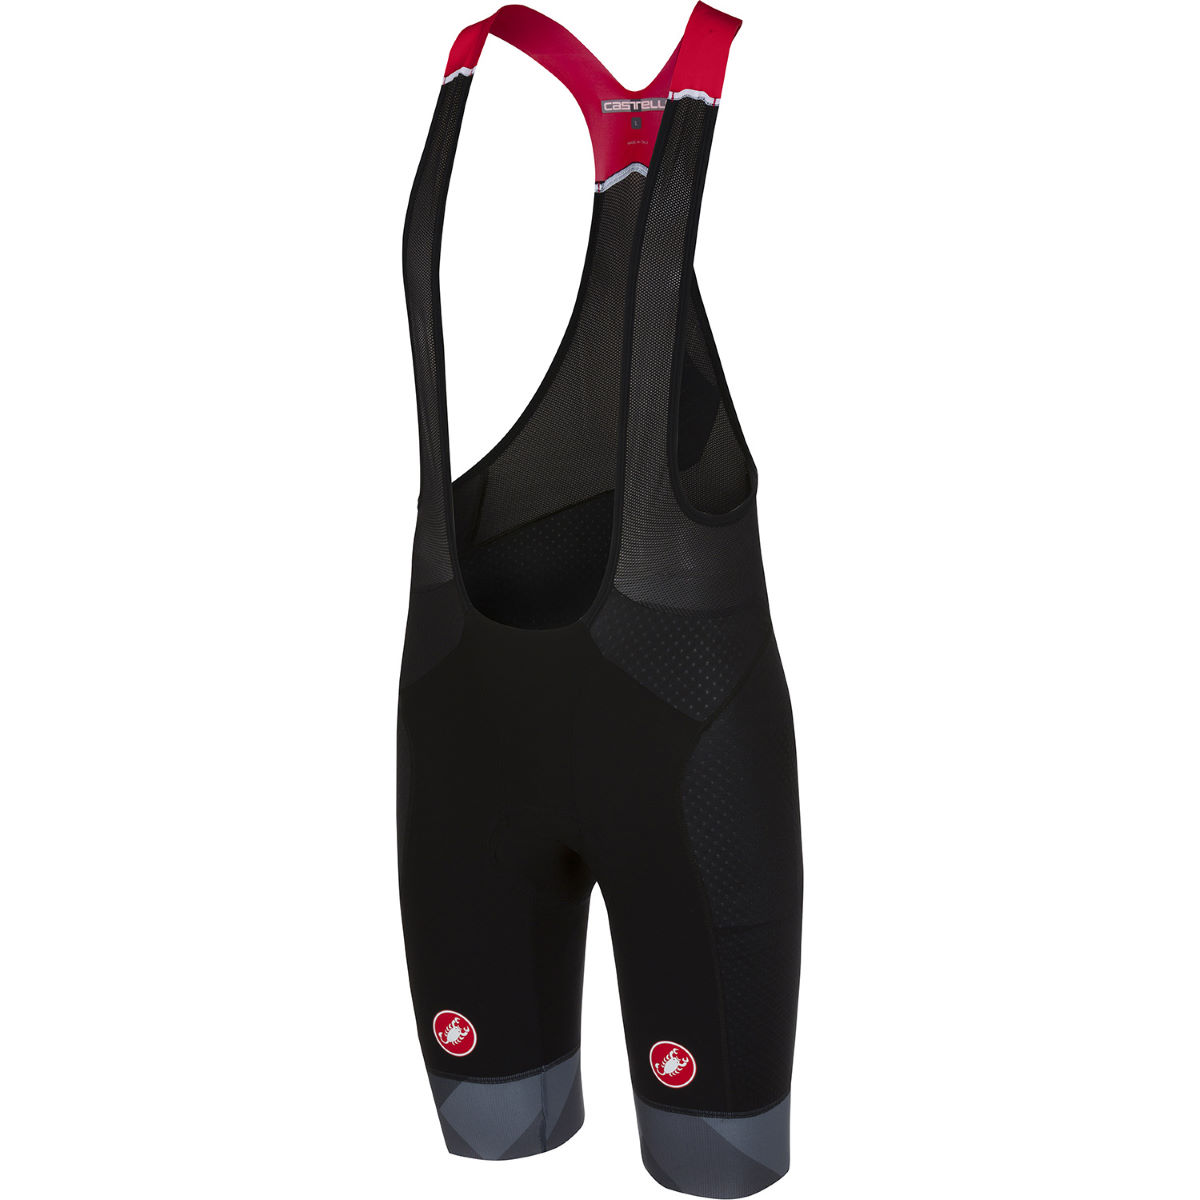 Cuissard court à bretelles Castelli Free Aero Race (version kit) - S